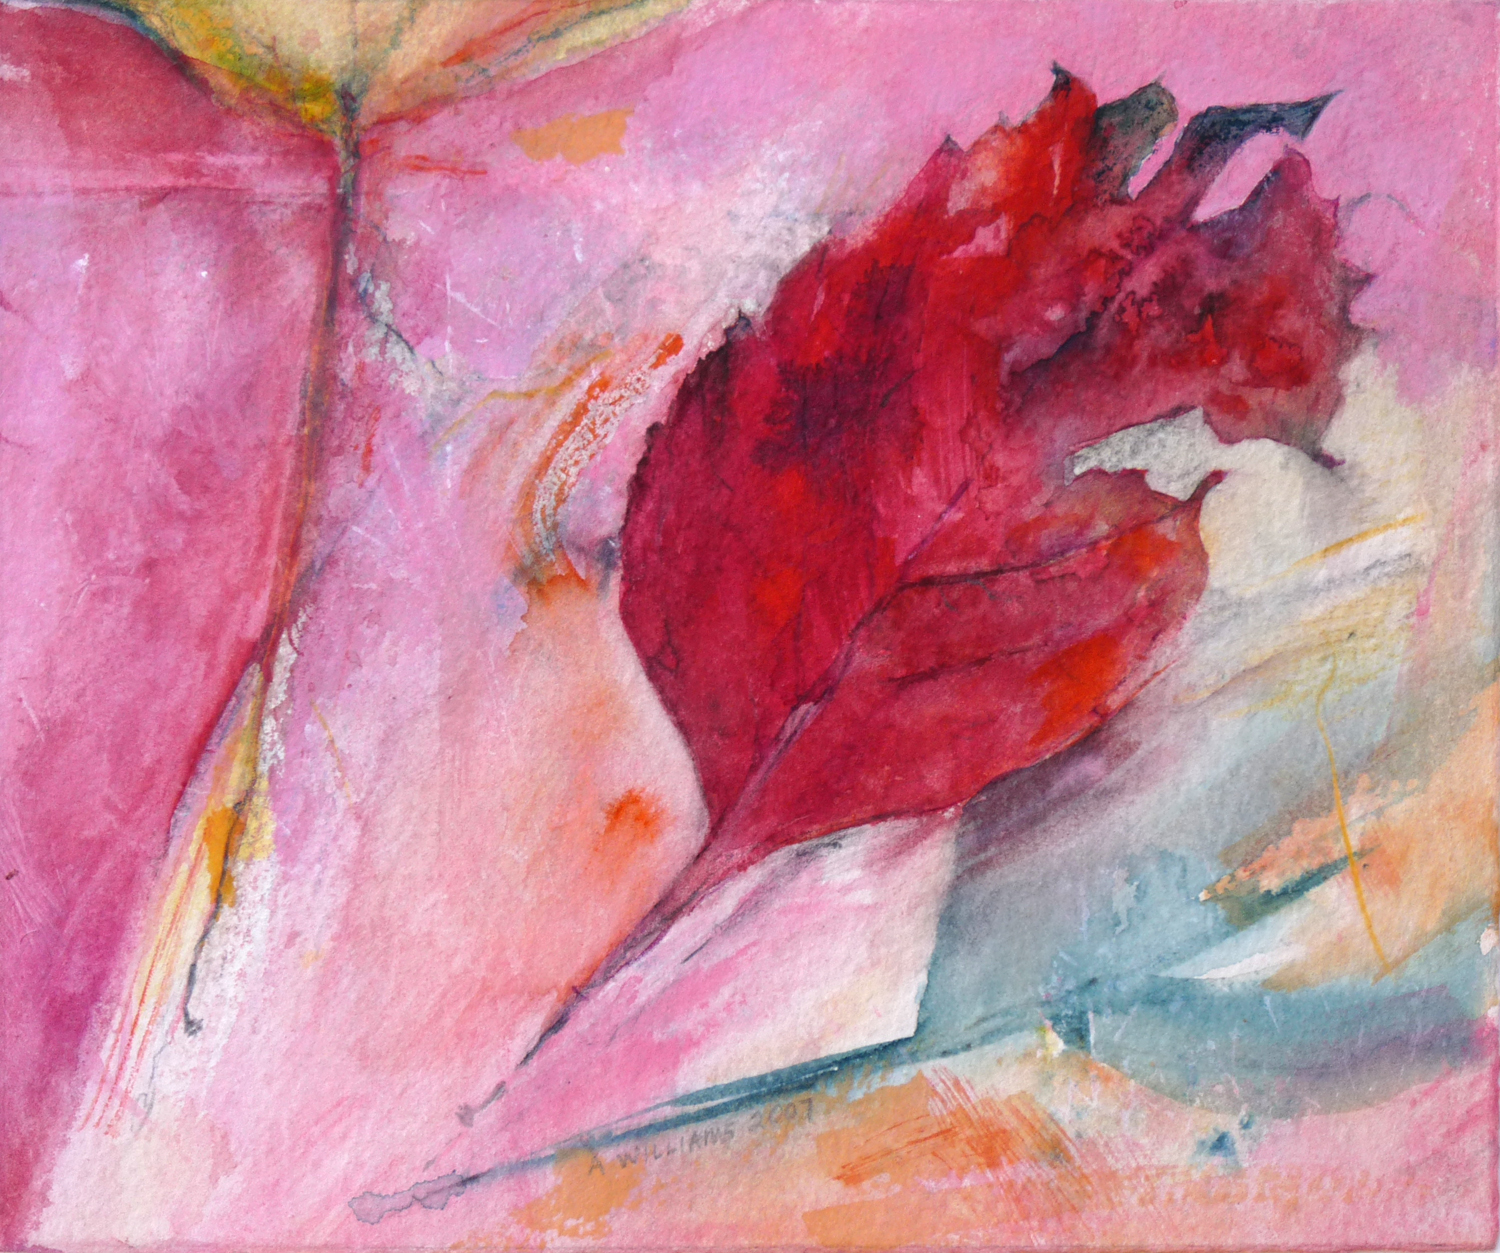 """PINK OCTOBER     7 1/4"""" x 8 1/2"""" —Watercolor on w/c paper    14"""" x 17"""" matted    $600.00"""